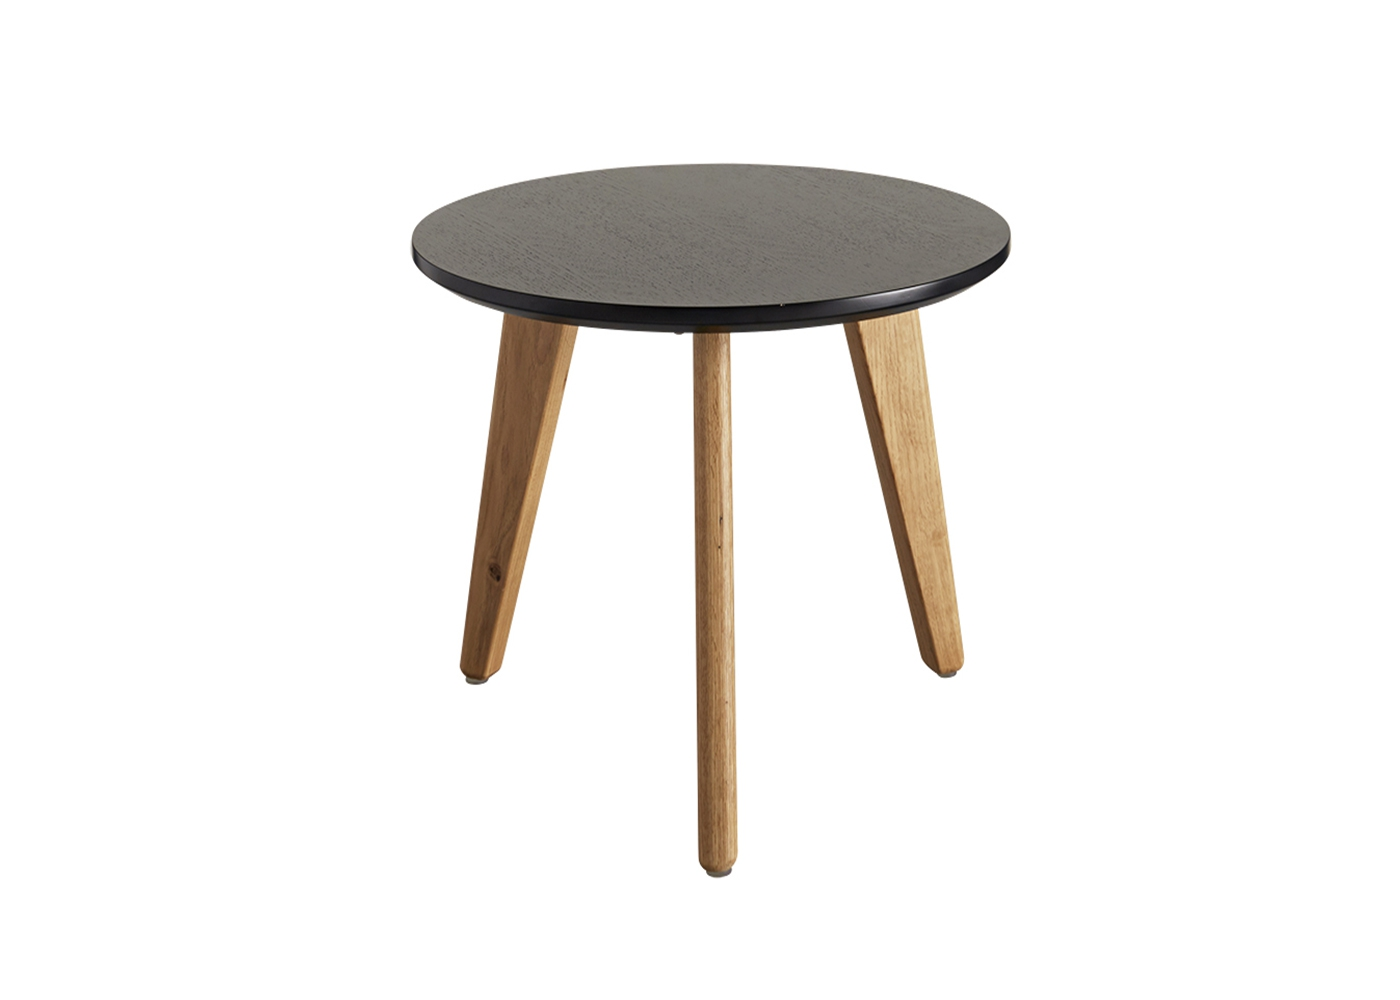 Table Basse Gigogne Design Table Gigogne Design Scandi En Chêne Chez Ksl Living